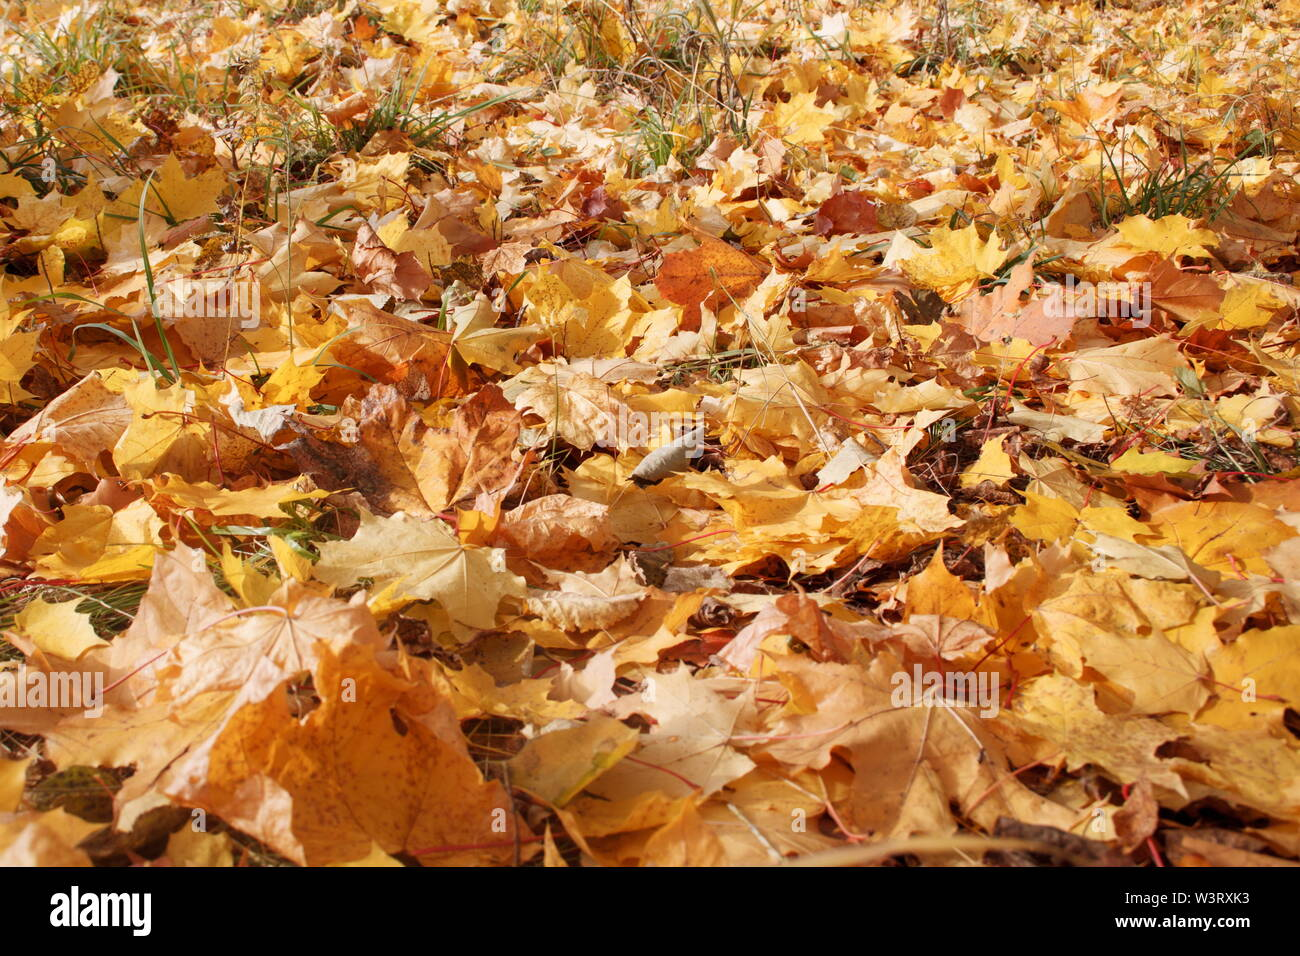 Yellow and orange maple leaves are lying on grass in the autumn park. Autumn background. Seasons of the year. - Stock Image